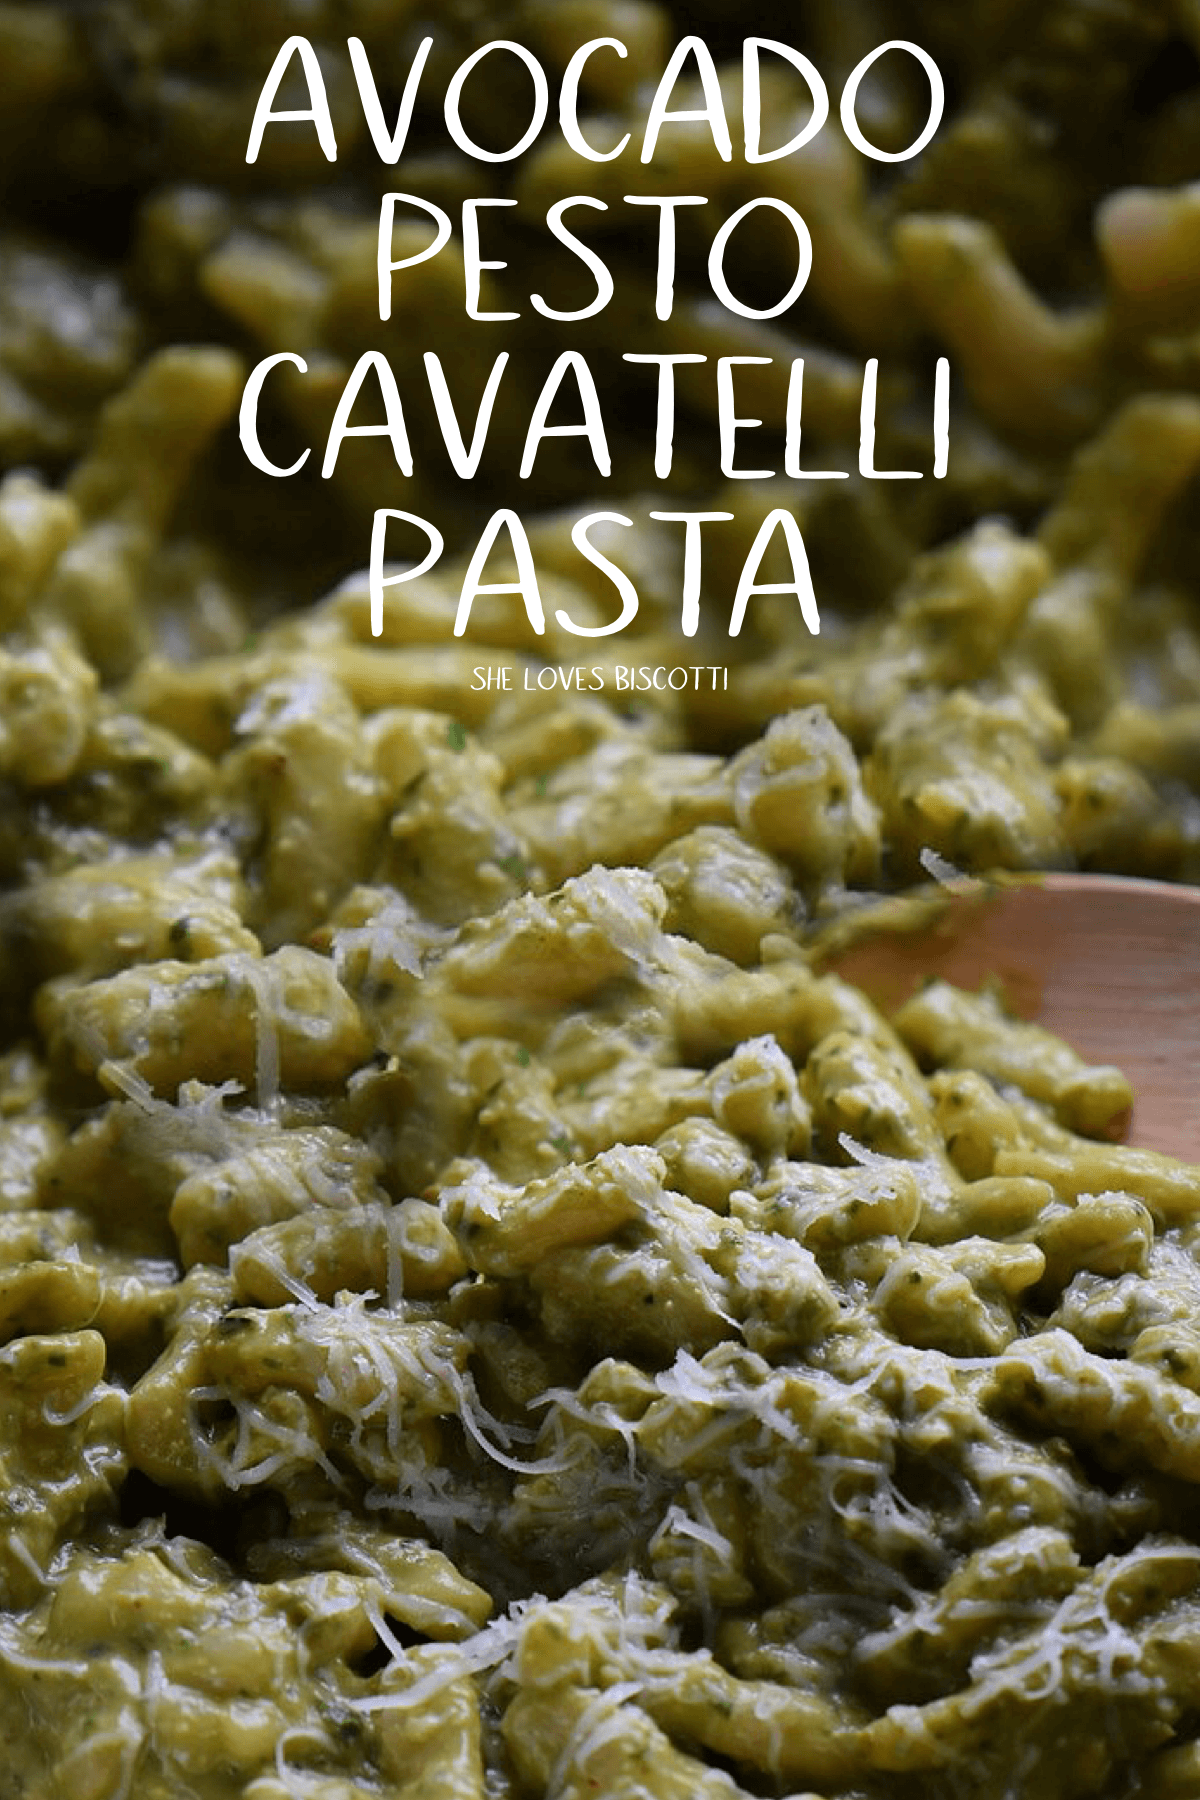 Avocado Pesto Cavatelli Pasta Recipe ||  avocado pesto sauce || avocado pesto pasta || healthy pasta recipe #cavatelli #homemadepasta #vegetarian #healthysauce #meatlessmonday